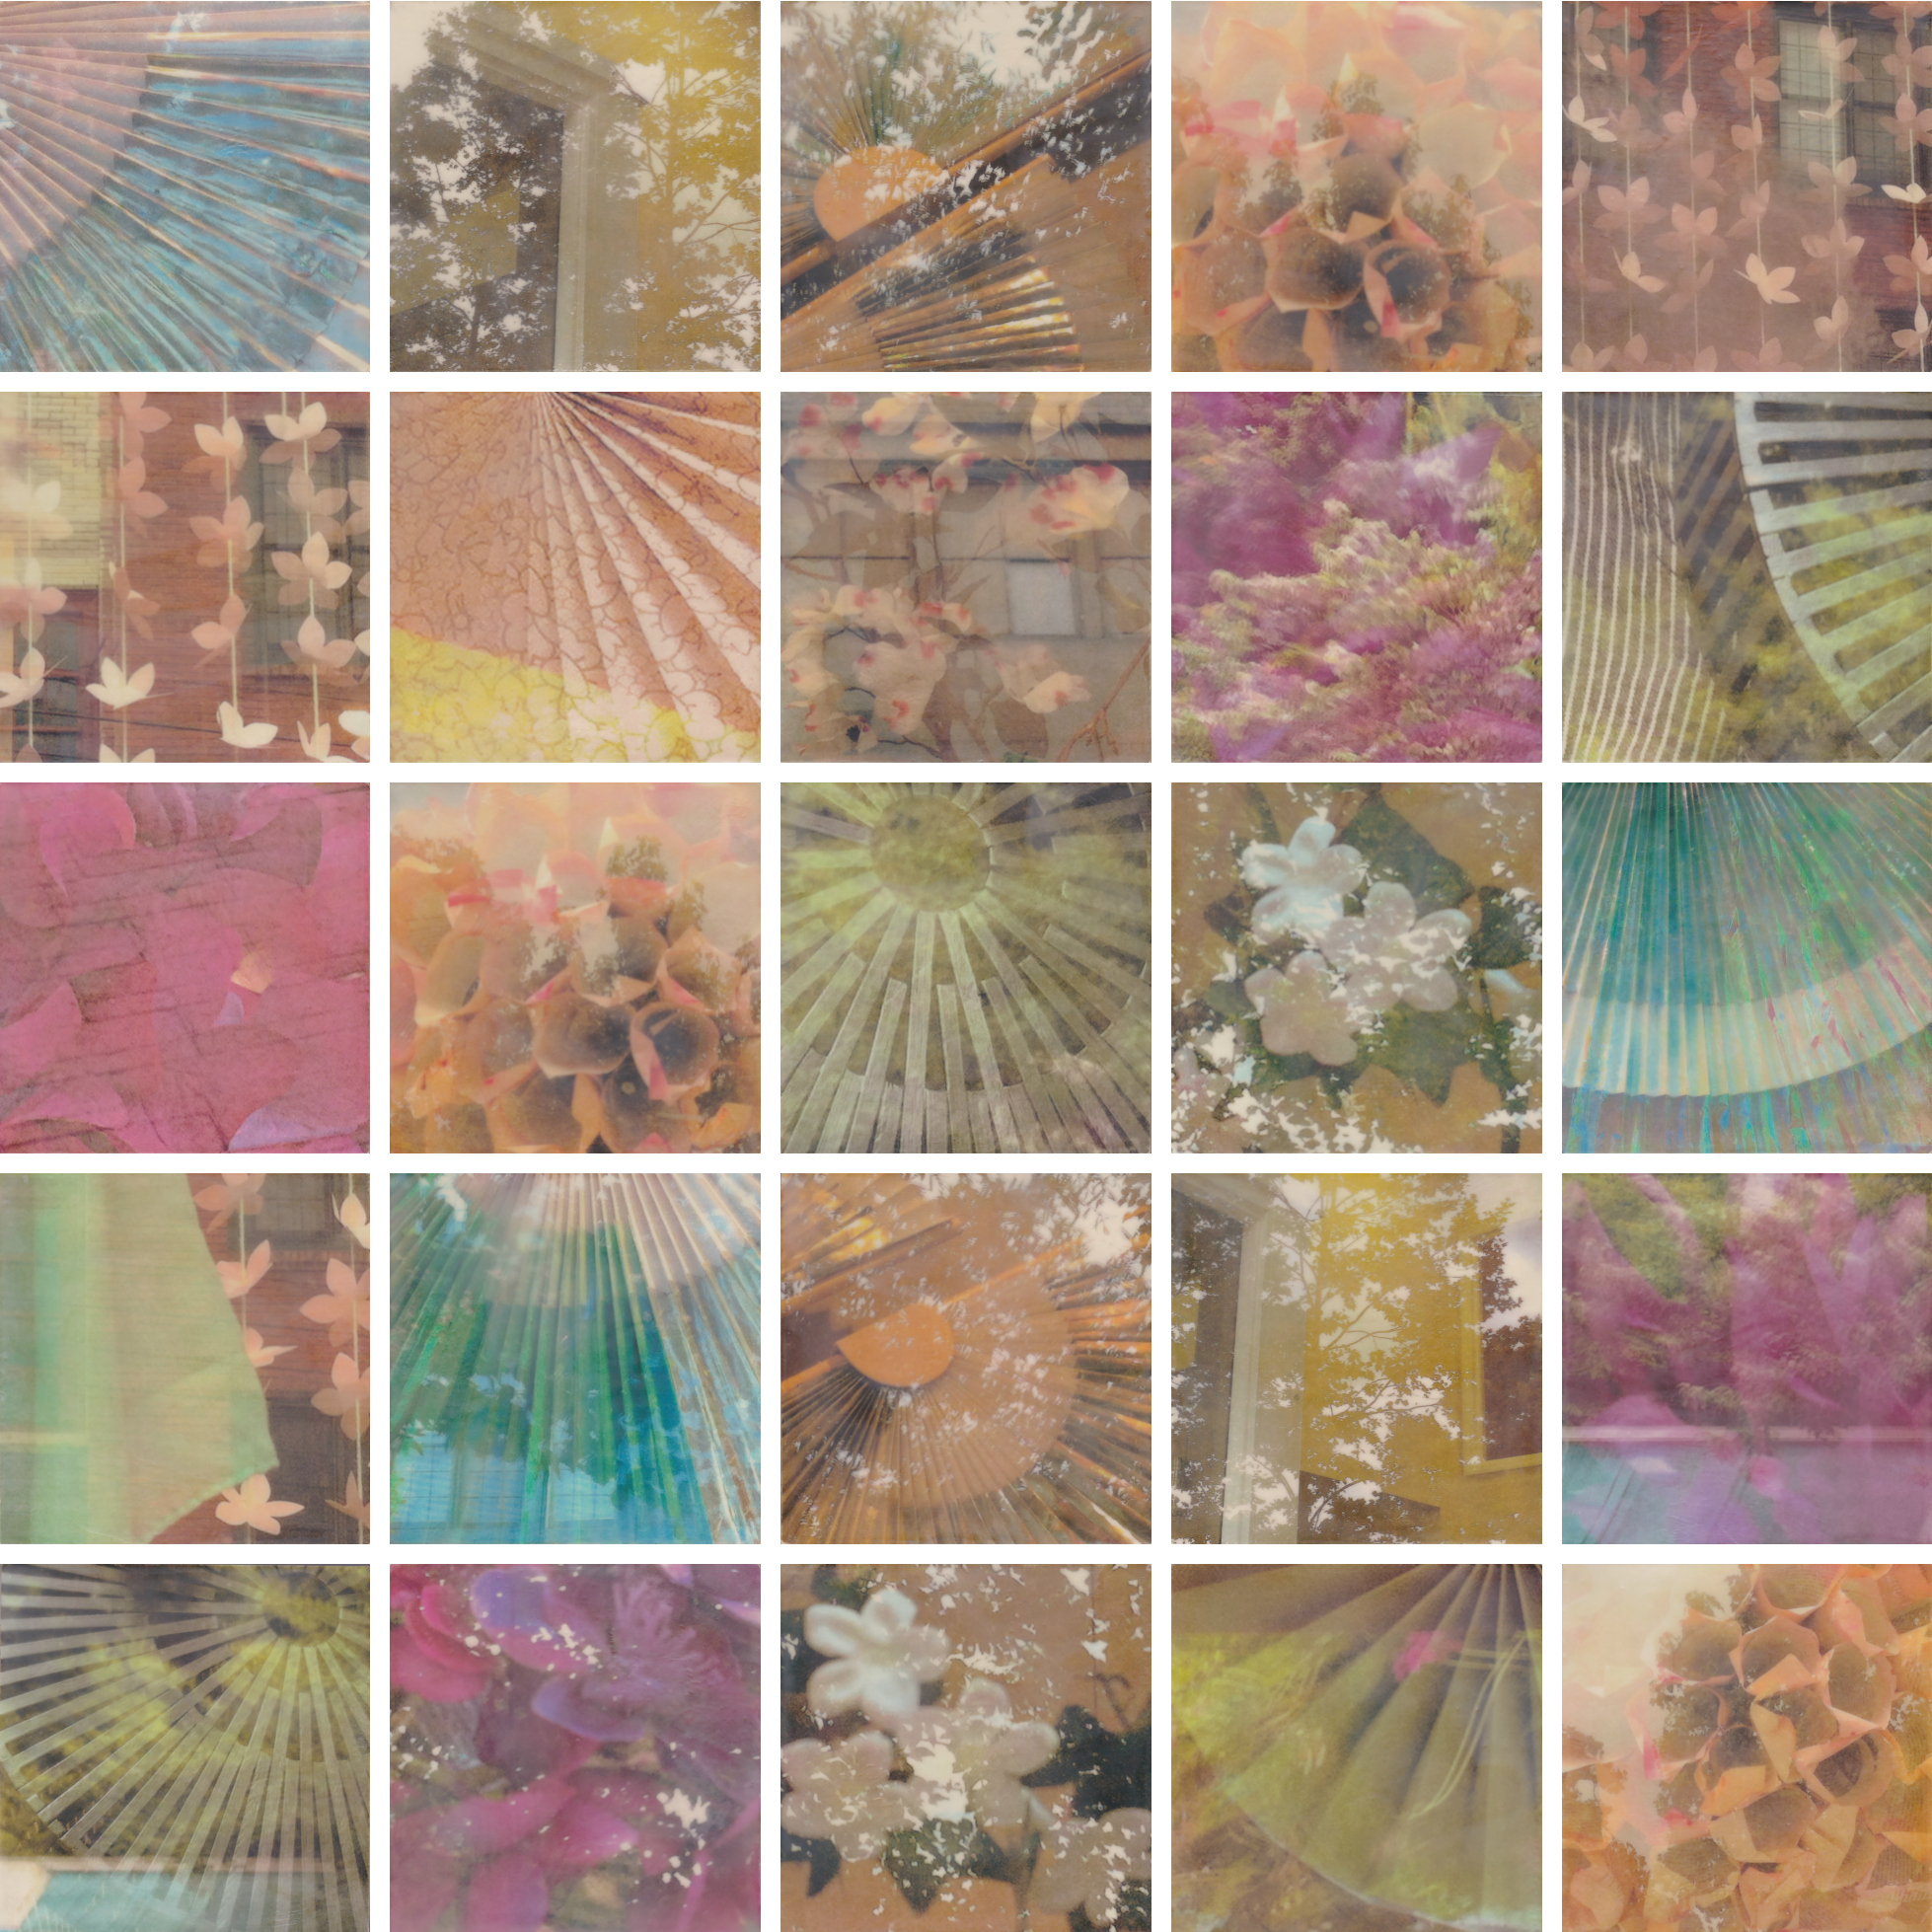 Blush by Erin Keane : photography with encaustic beeswax : 40 x 40 inches